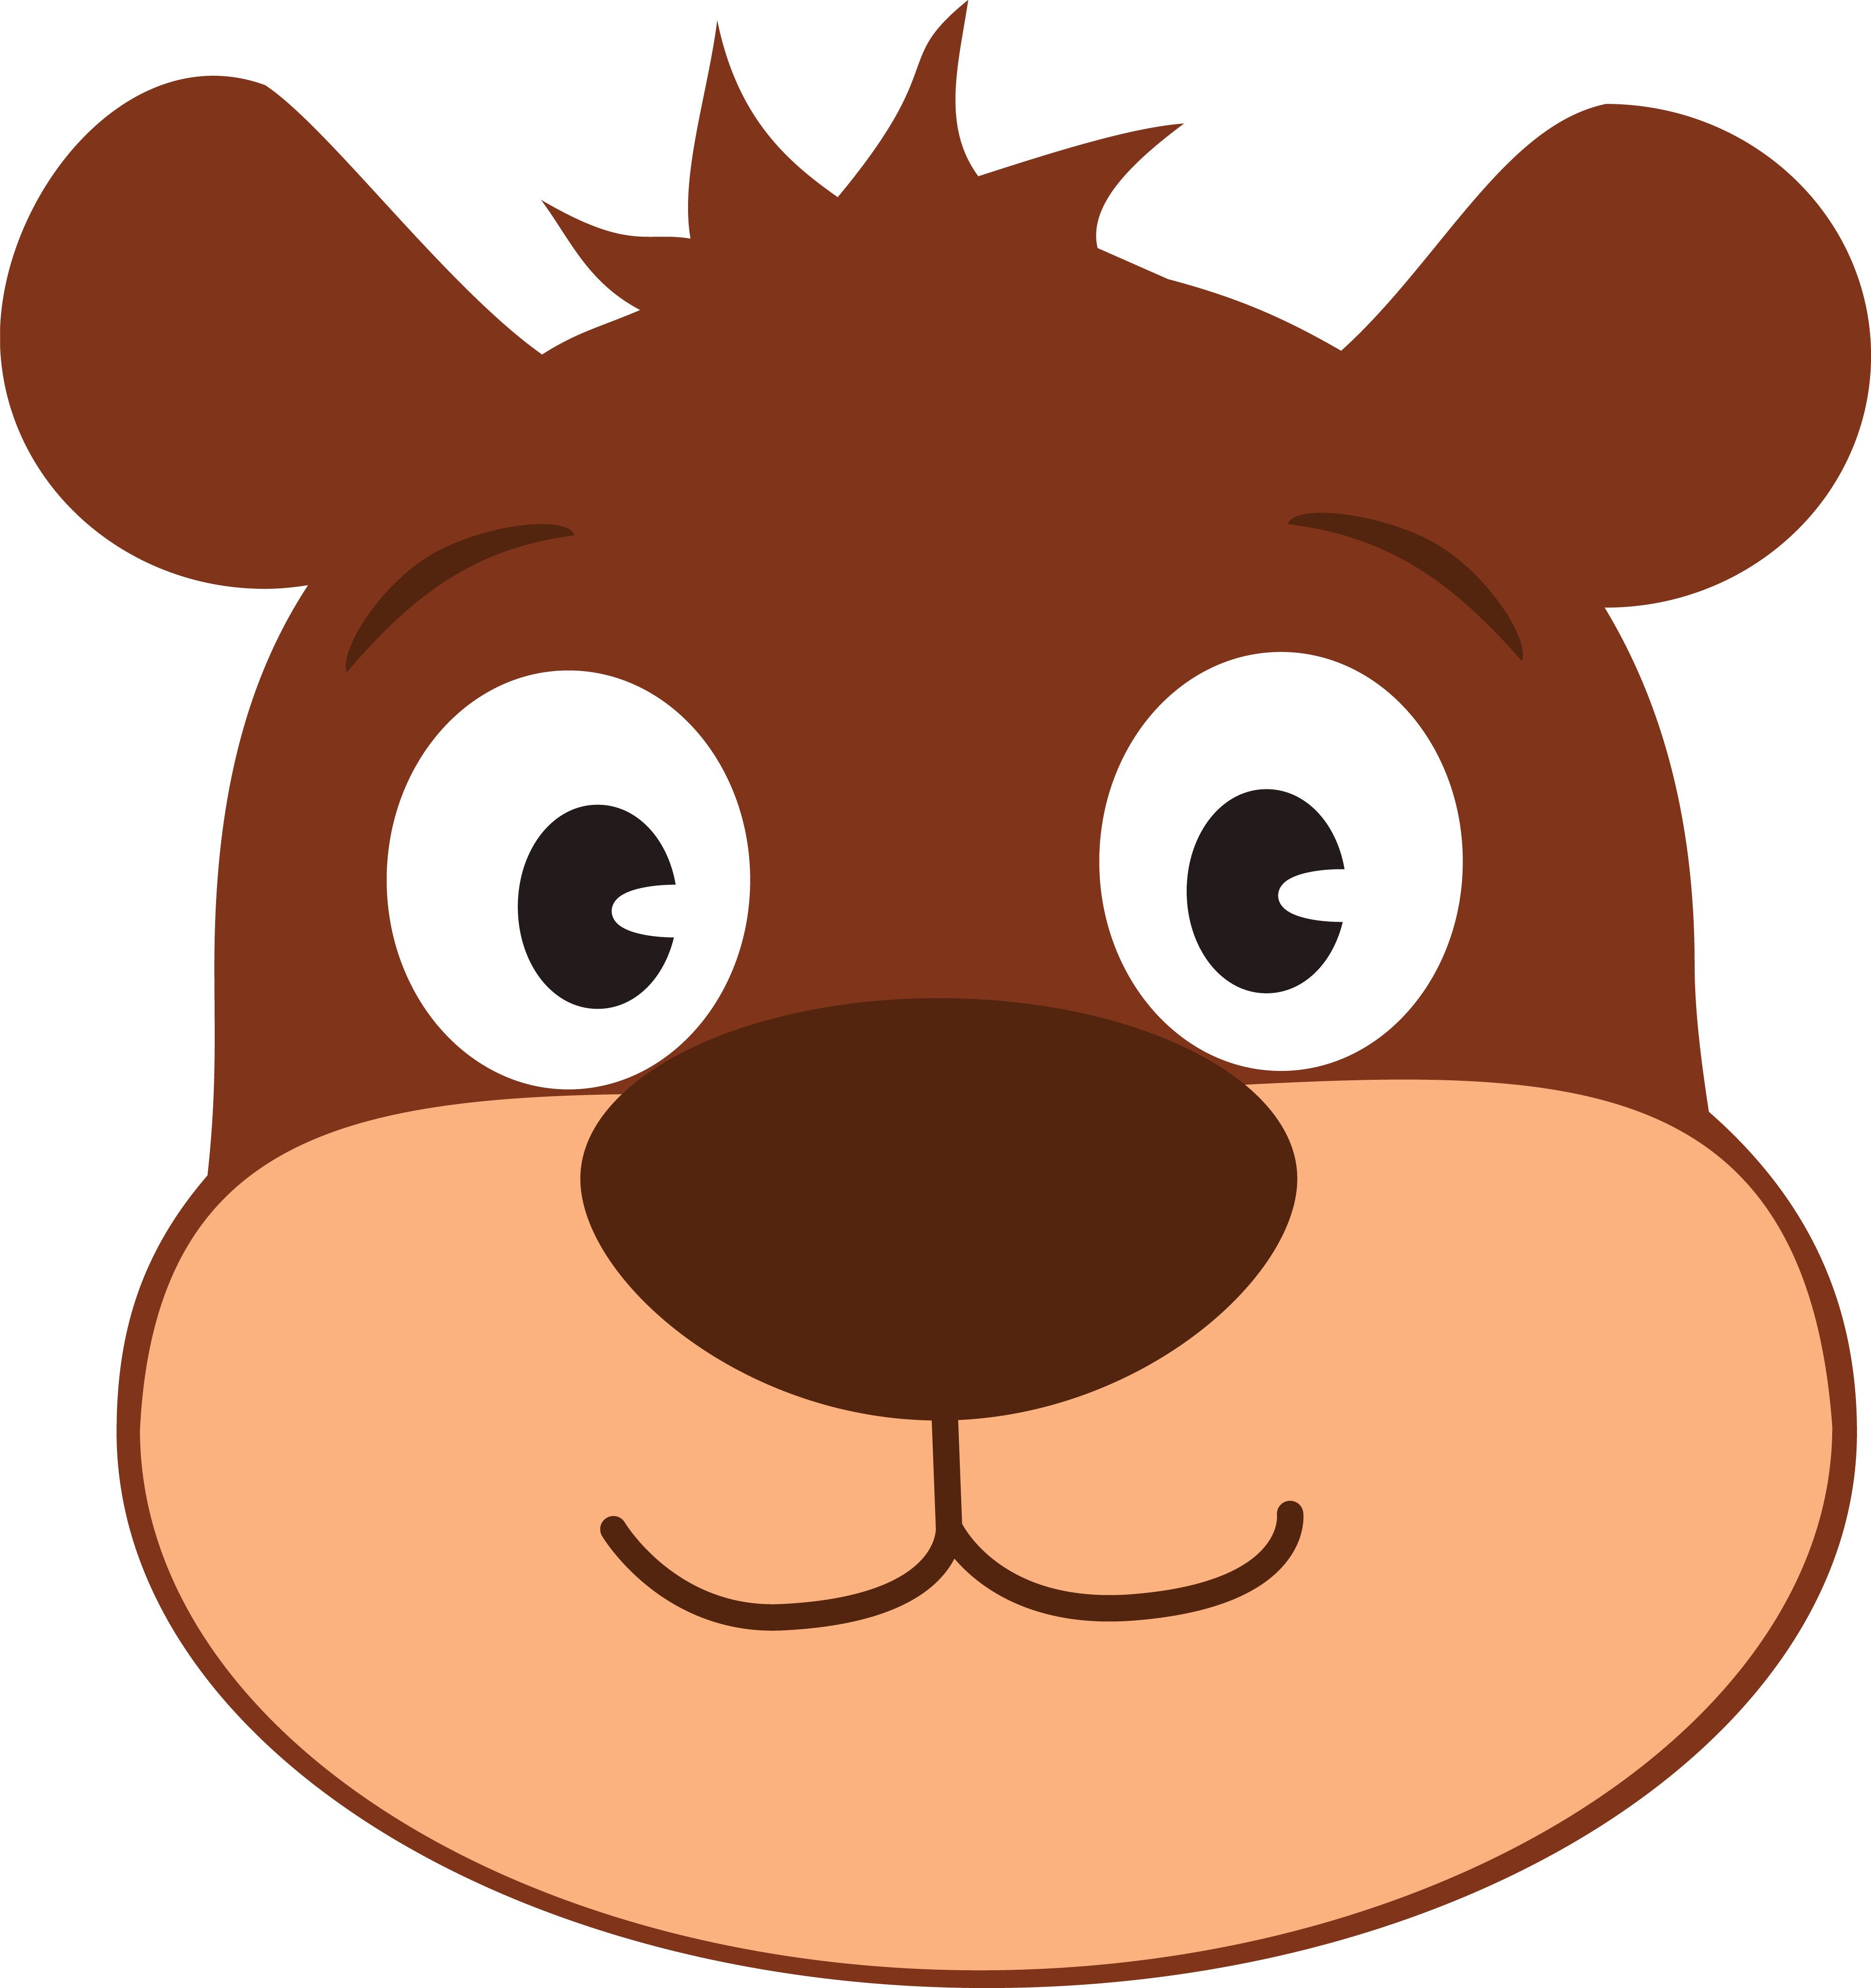 Free clipart of a cute bear face - Clipart visage ...